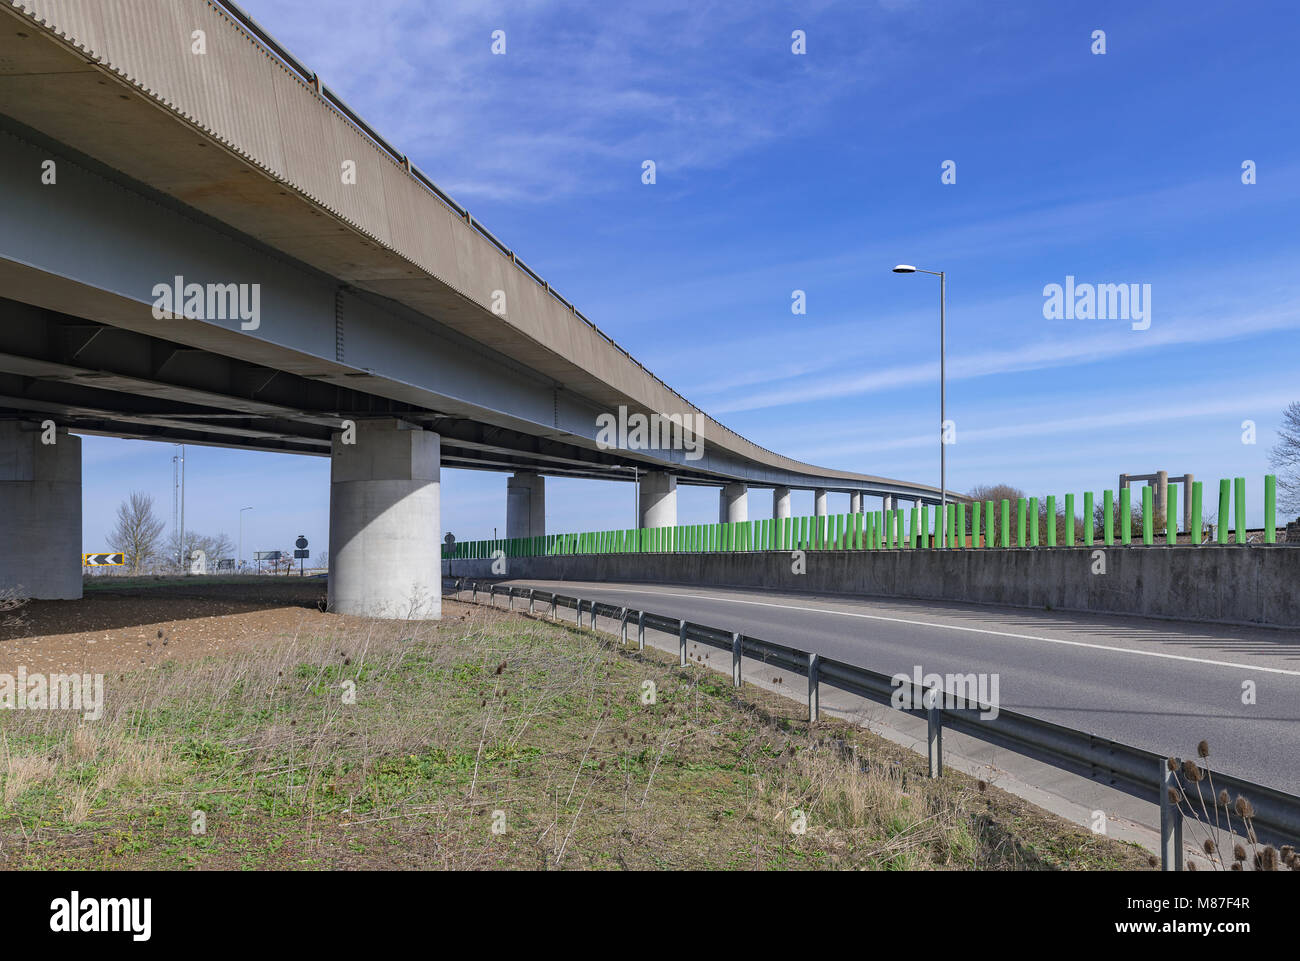 isle-of-sheppy-roadbridge-kent-uk-M87F4R